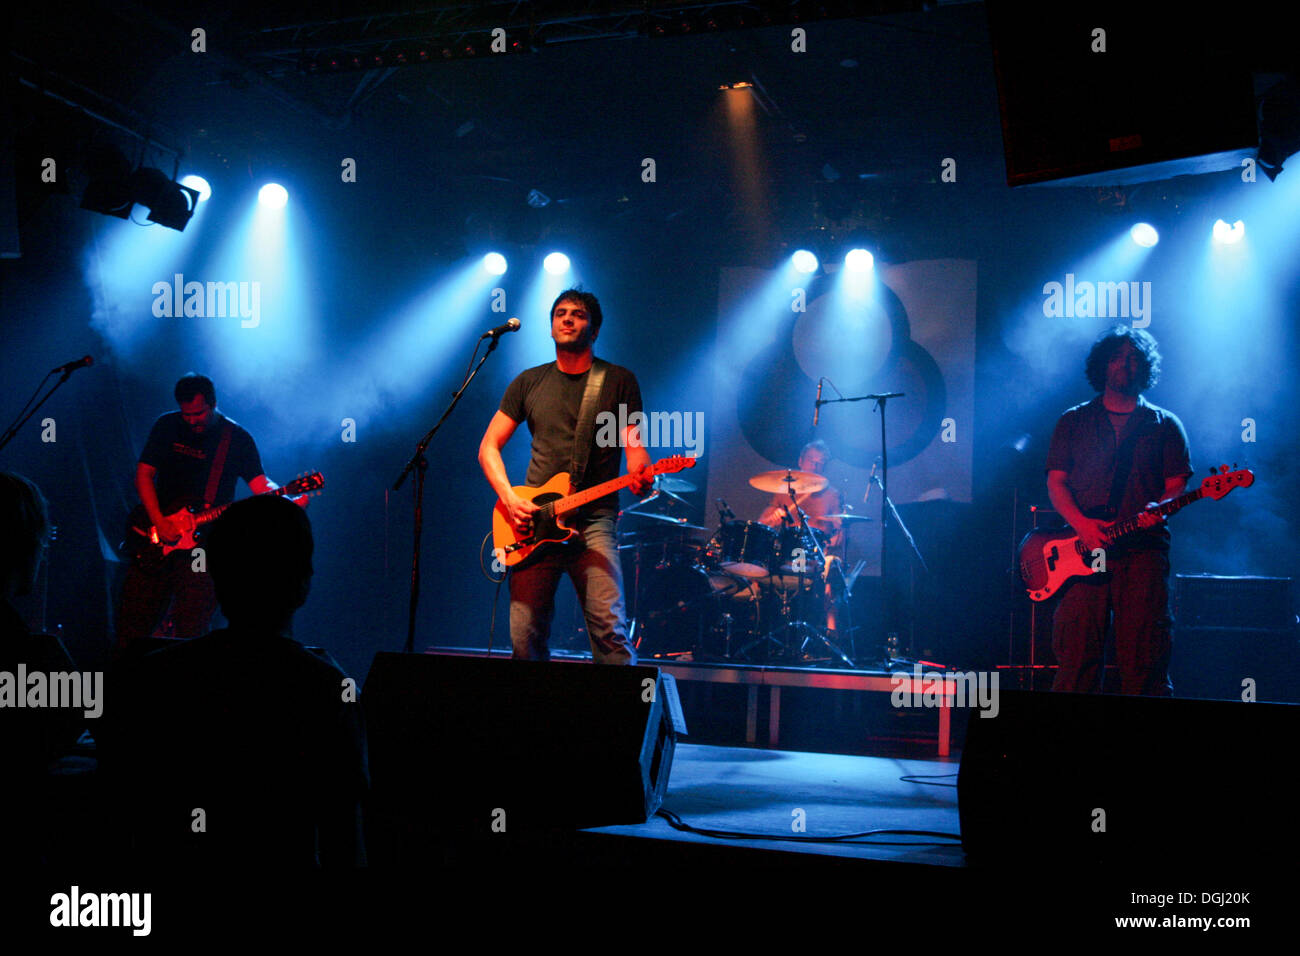 The German noise rock band Harmful live in the Schueuer venue, Lucerne, Switzerland - Stock Image